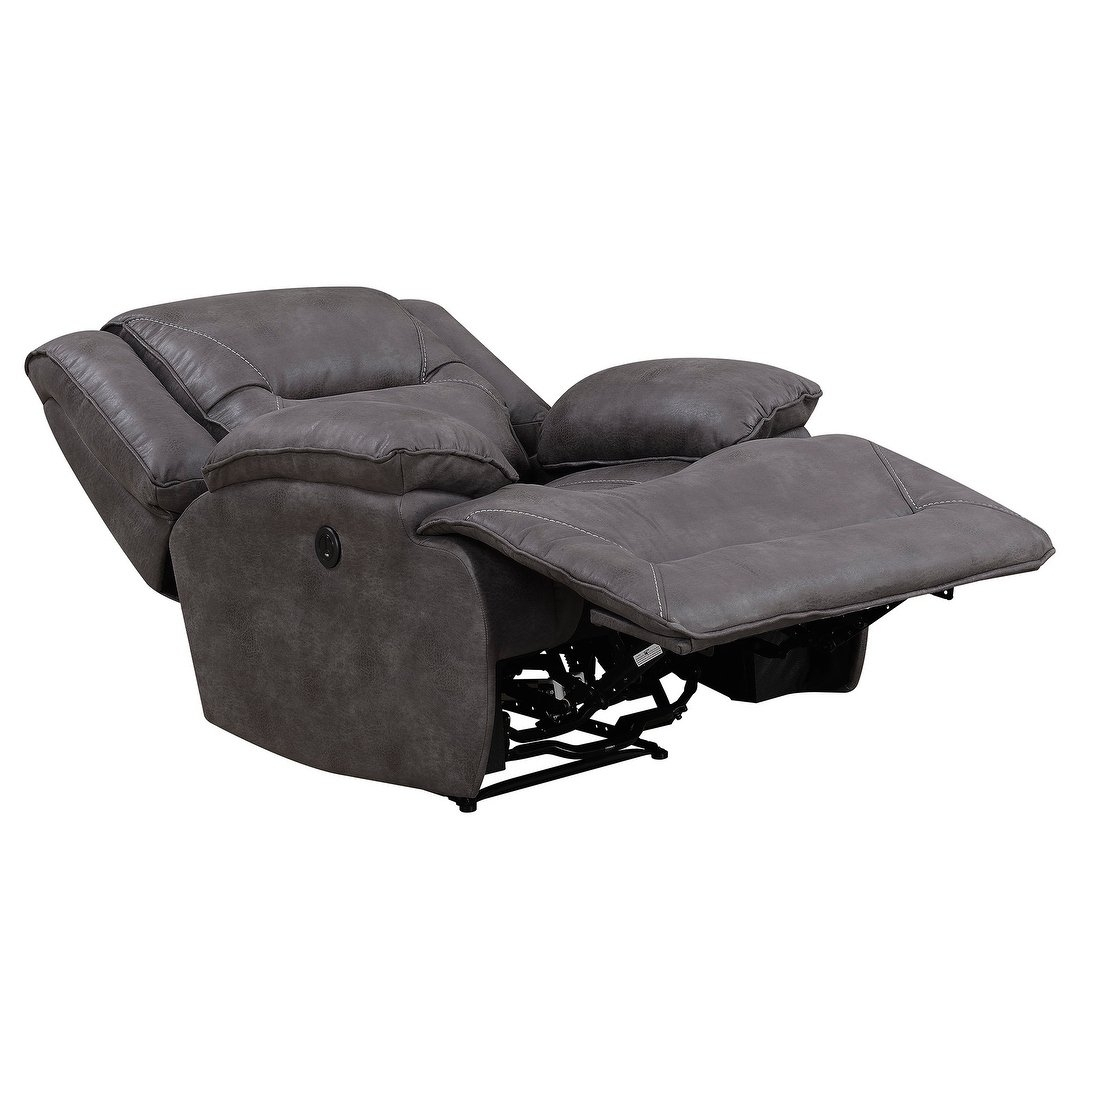 Shop Dylan Power Recliner With Memory Foam Seat Topper And Usb intended for Travis Dk Grey Leather 6 Piece Power Reclining Sectionals With Power Headrest & Usb (Image 21 of 30)